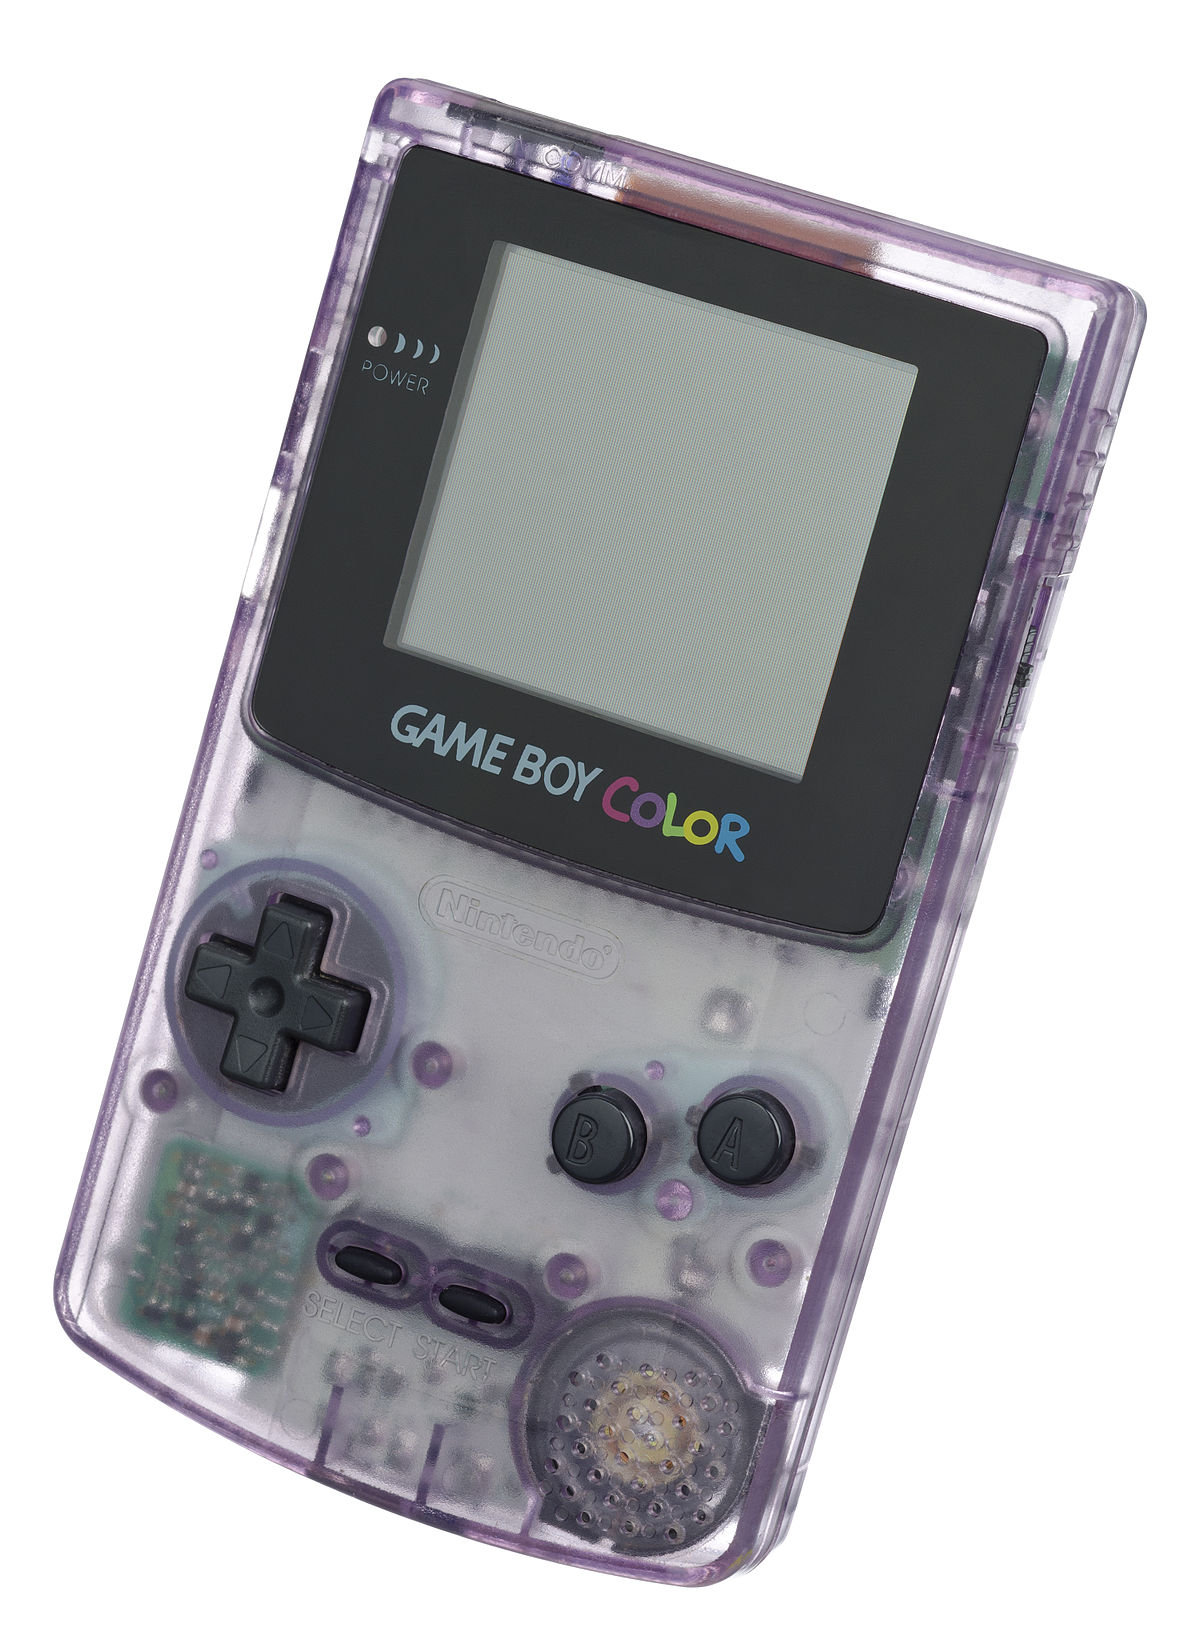 Game Boy Color.